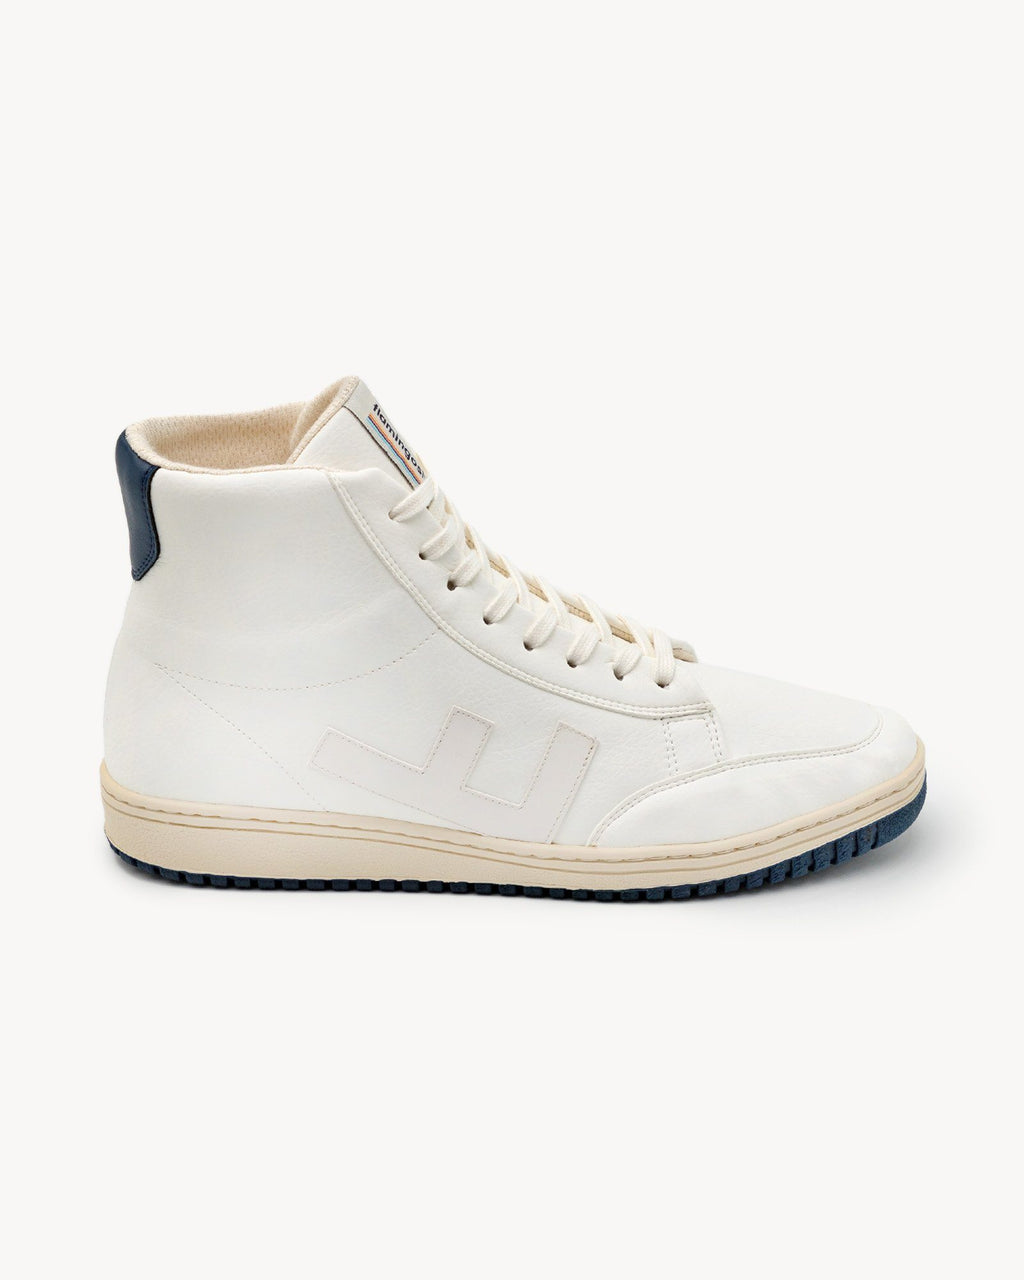 variant_2 | EN High Sneakers White Shoes Men | DE High Sneakers Boots Weiß Herren Turnschuhe